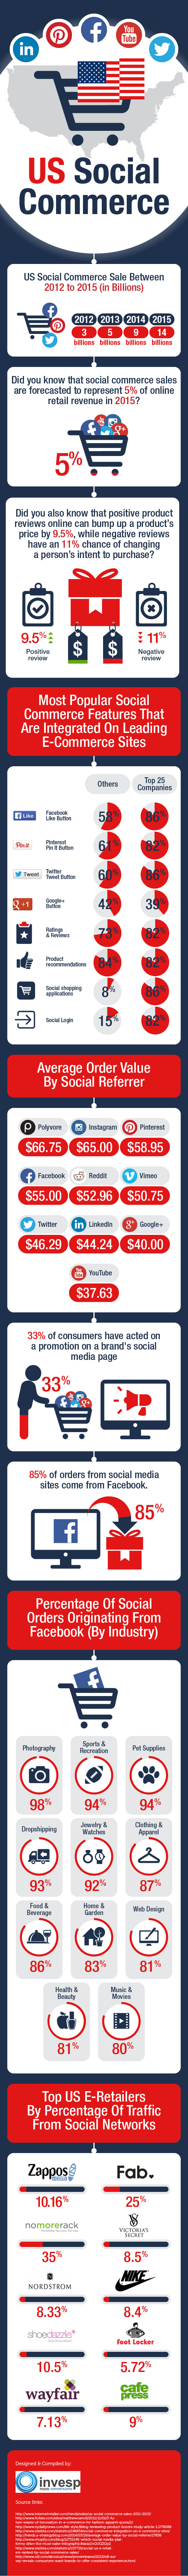 US Social Commerce – Statistics and Trends